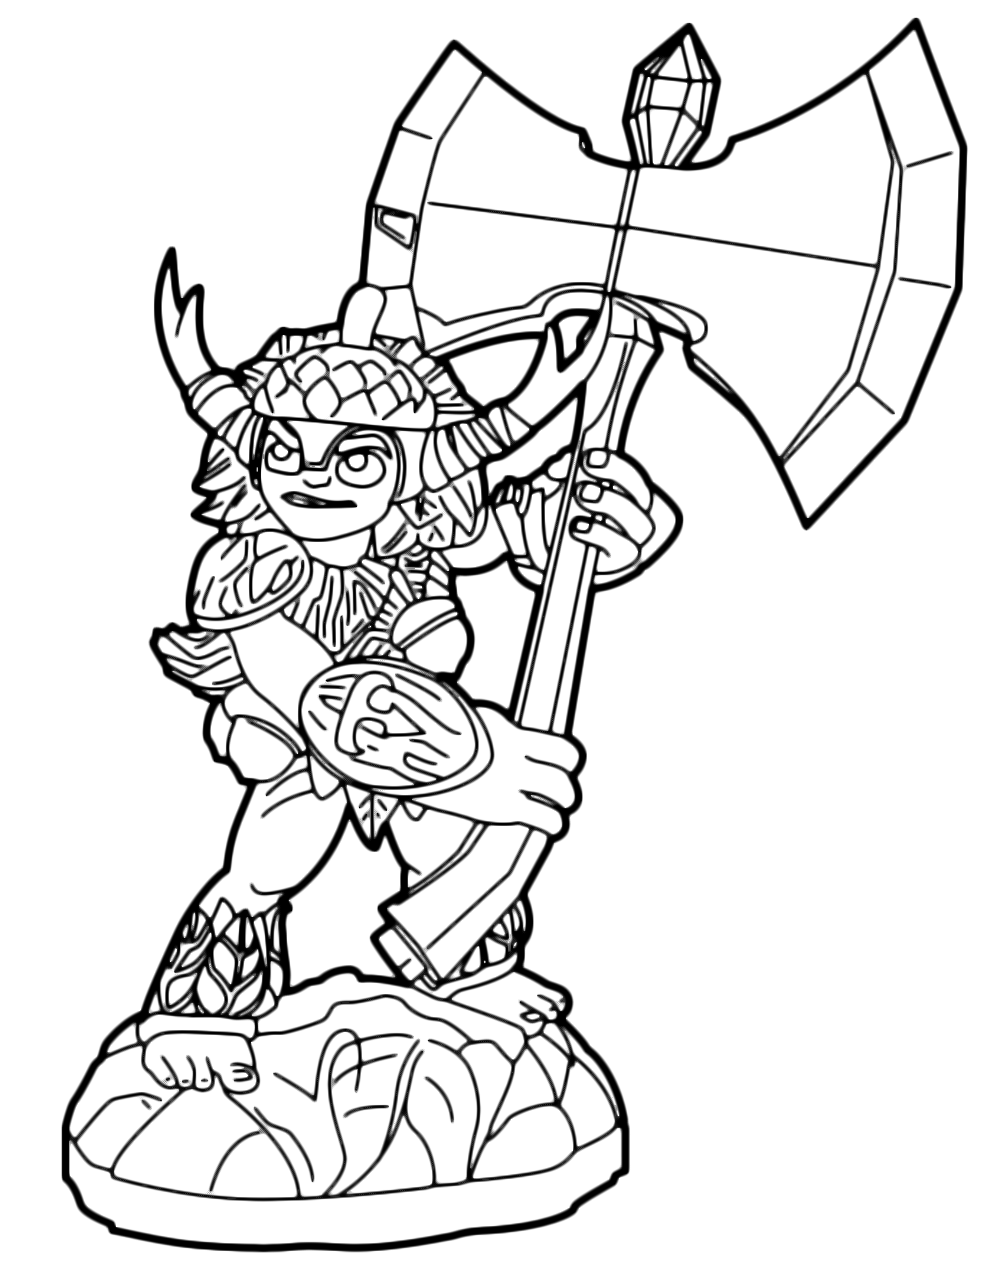 Skylanders Trap Team coloring pages - Chopper | Skylanders trap team,  Grinch coloring pages, Coloring pages | 1268x1000